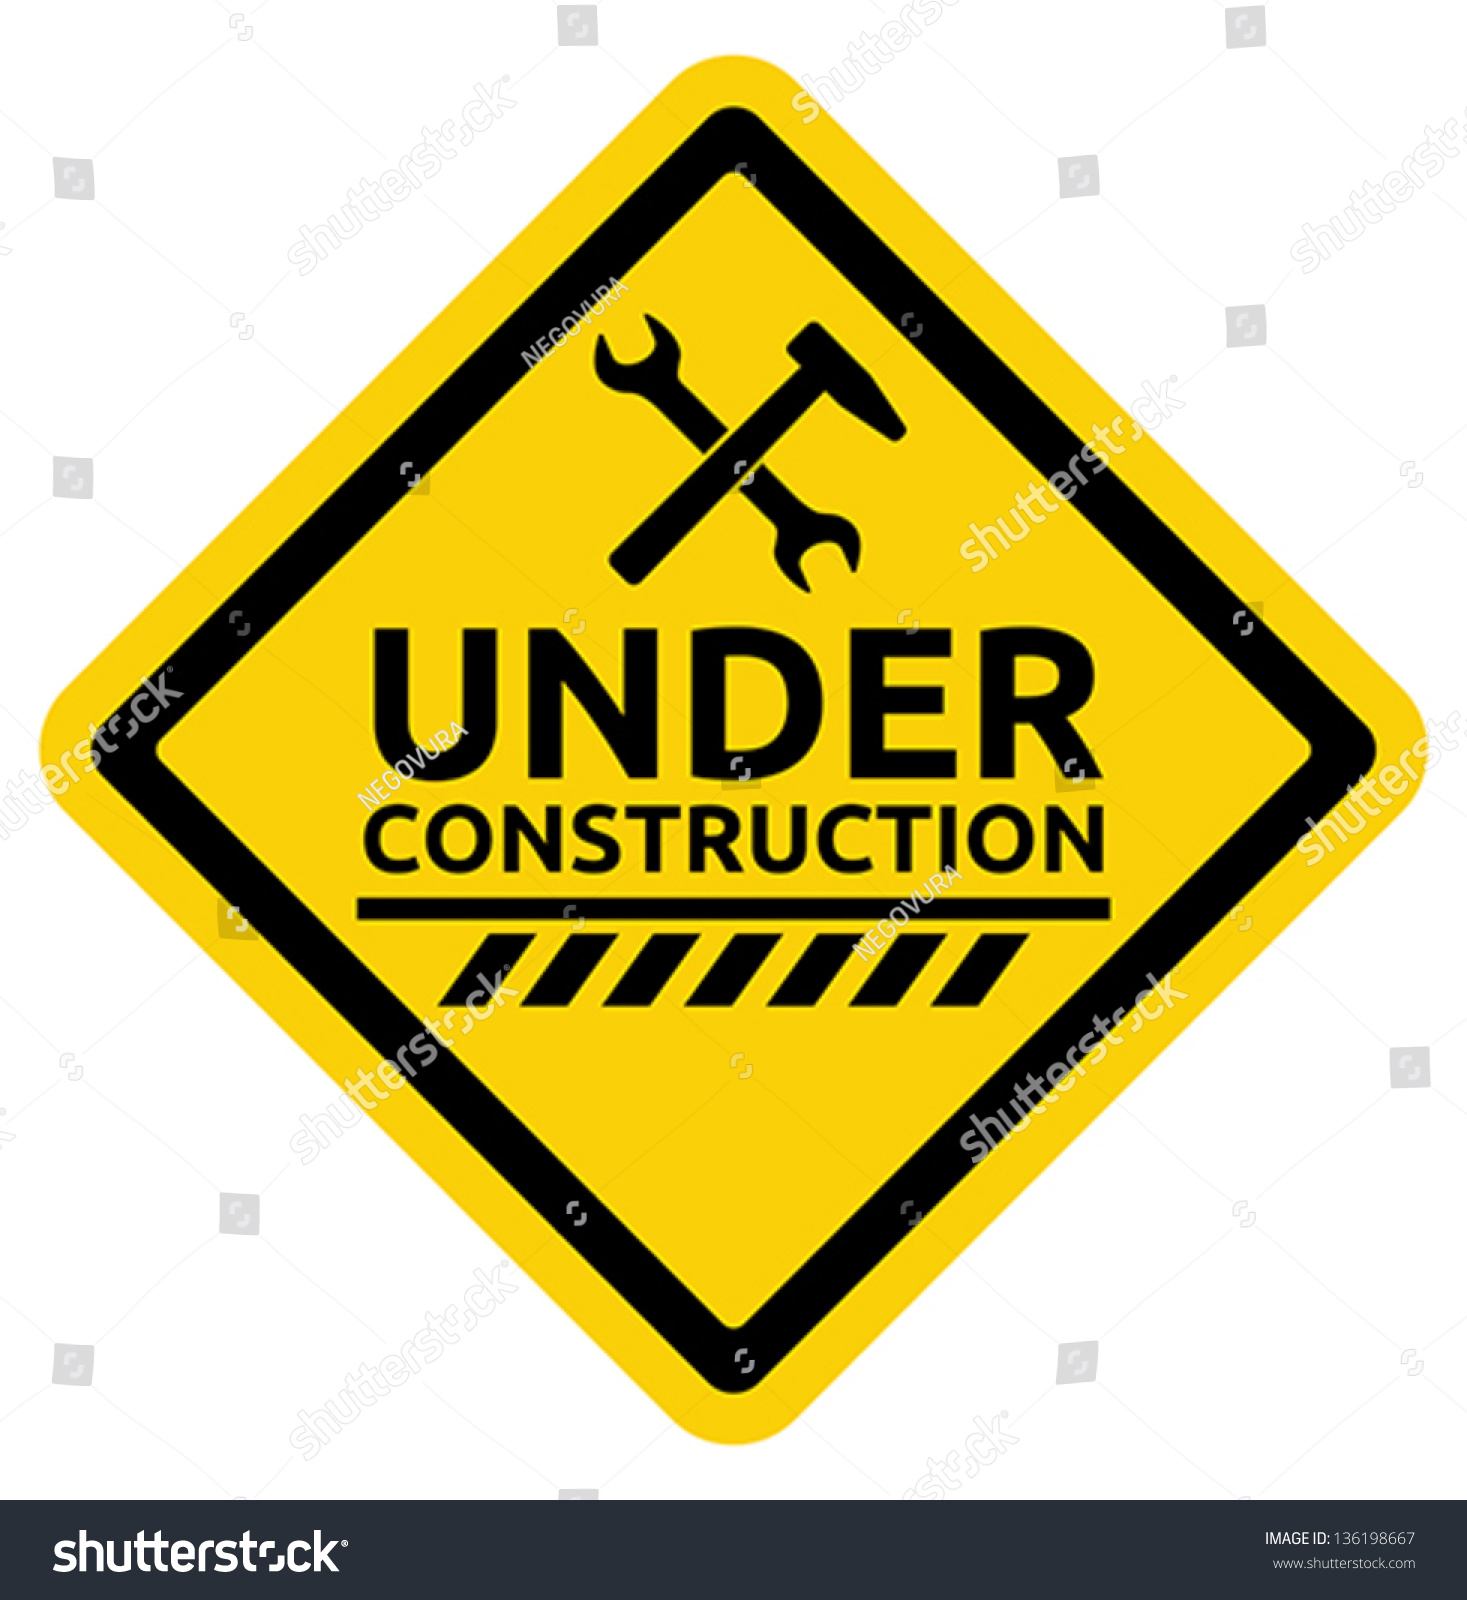 Under Construction Road Sign Stock Vector 136198667